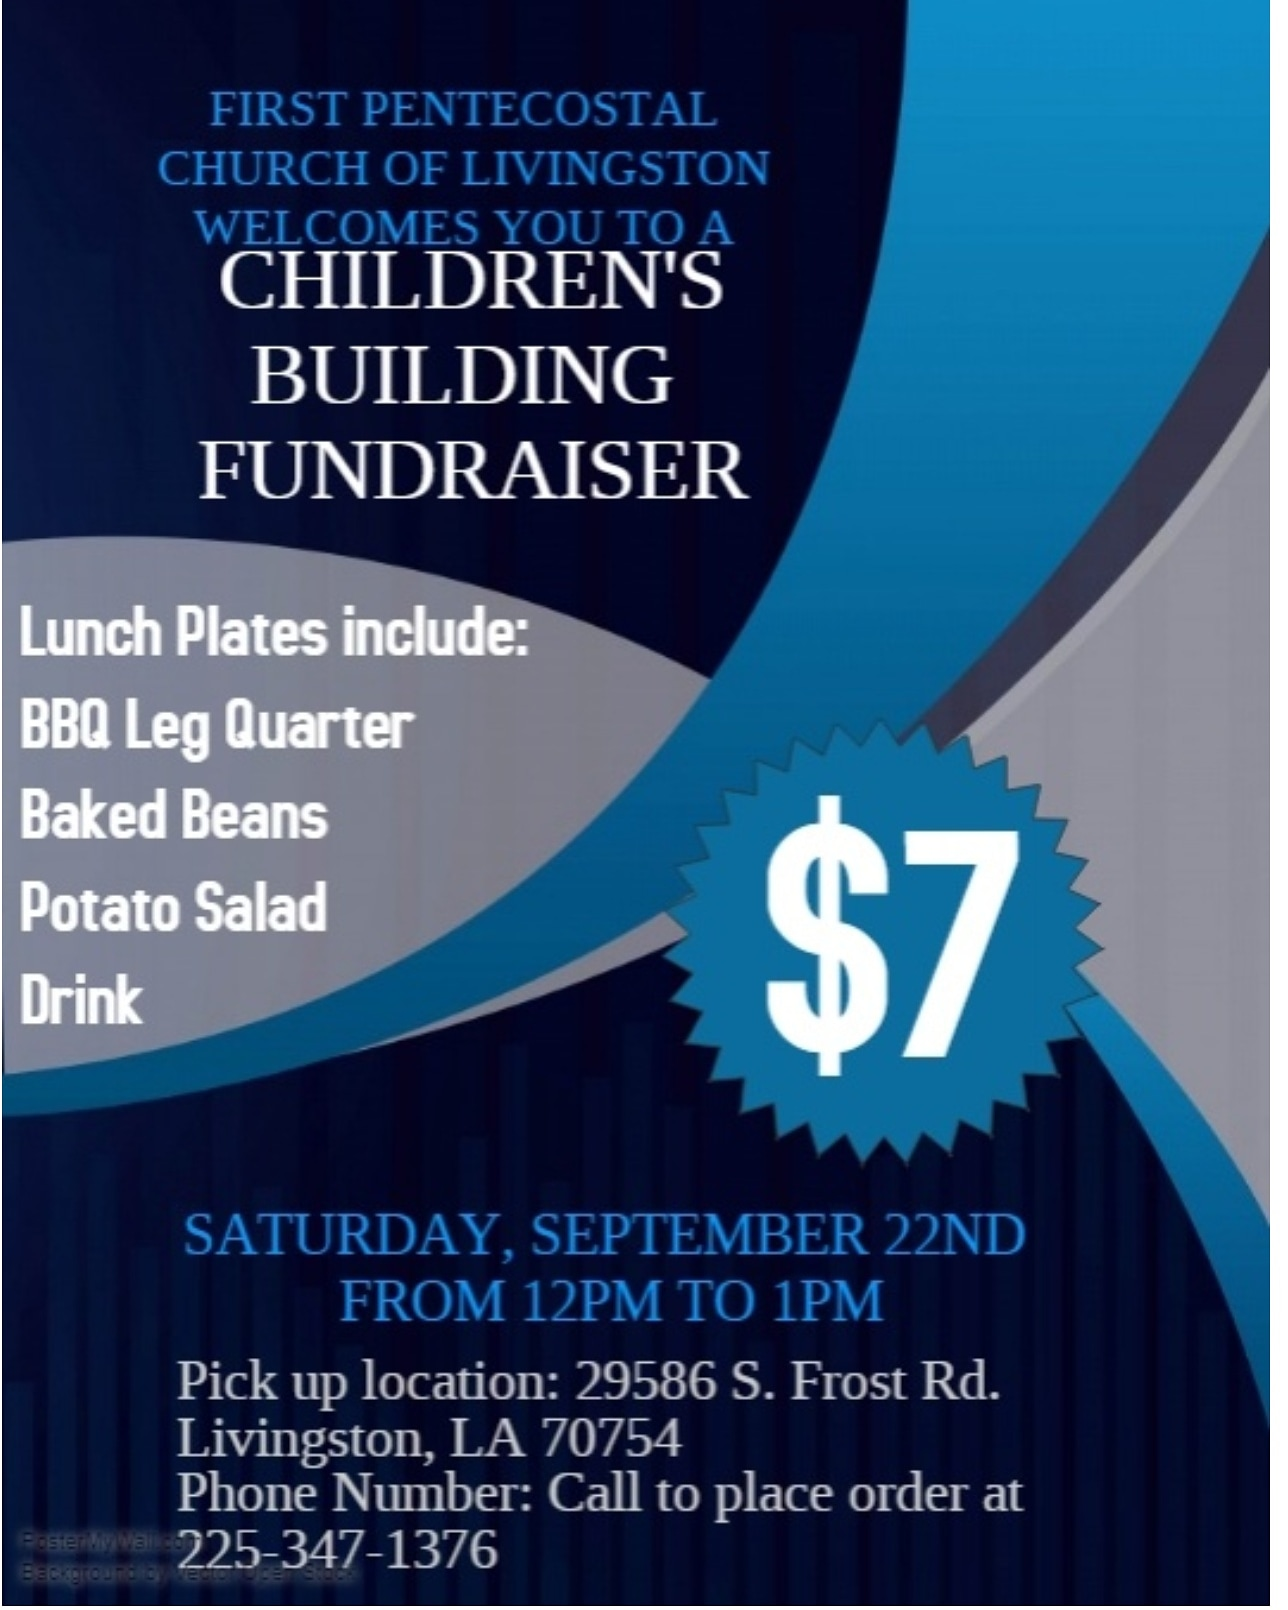 Children's Building Fundraiser Sept 22nd